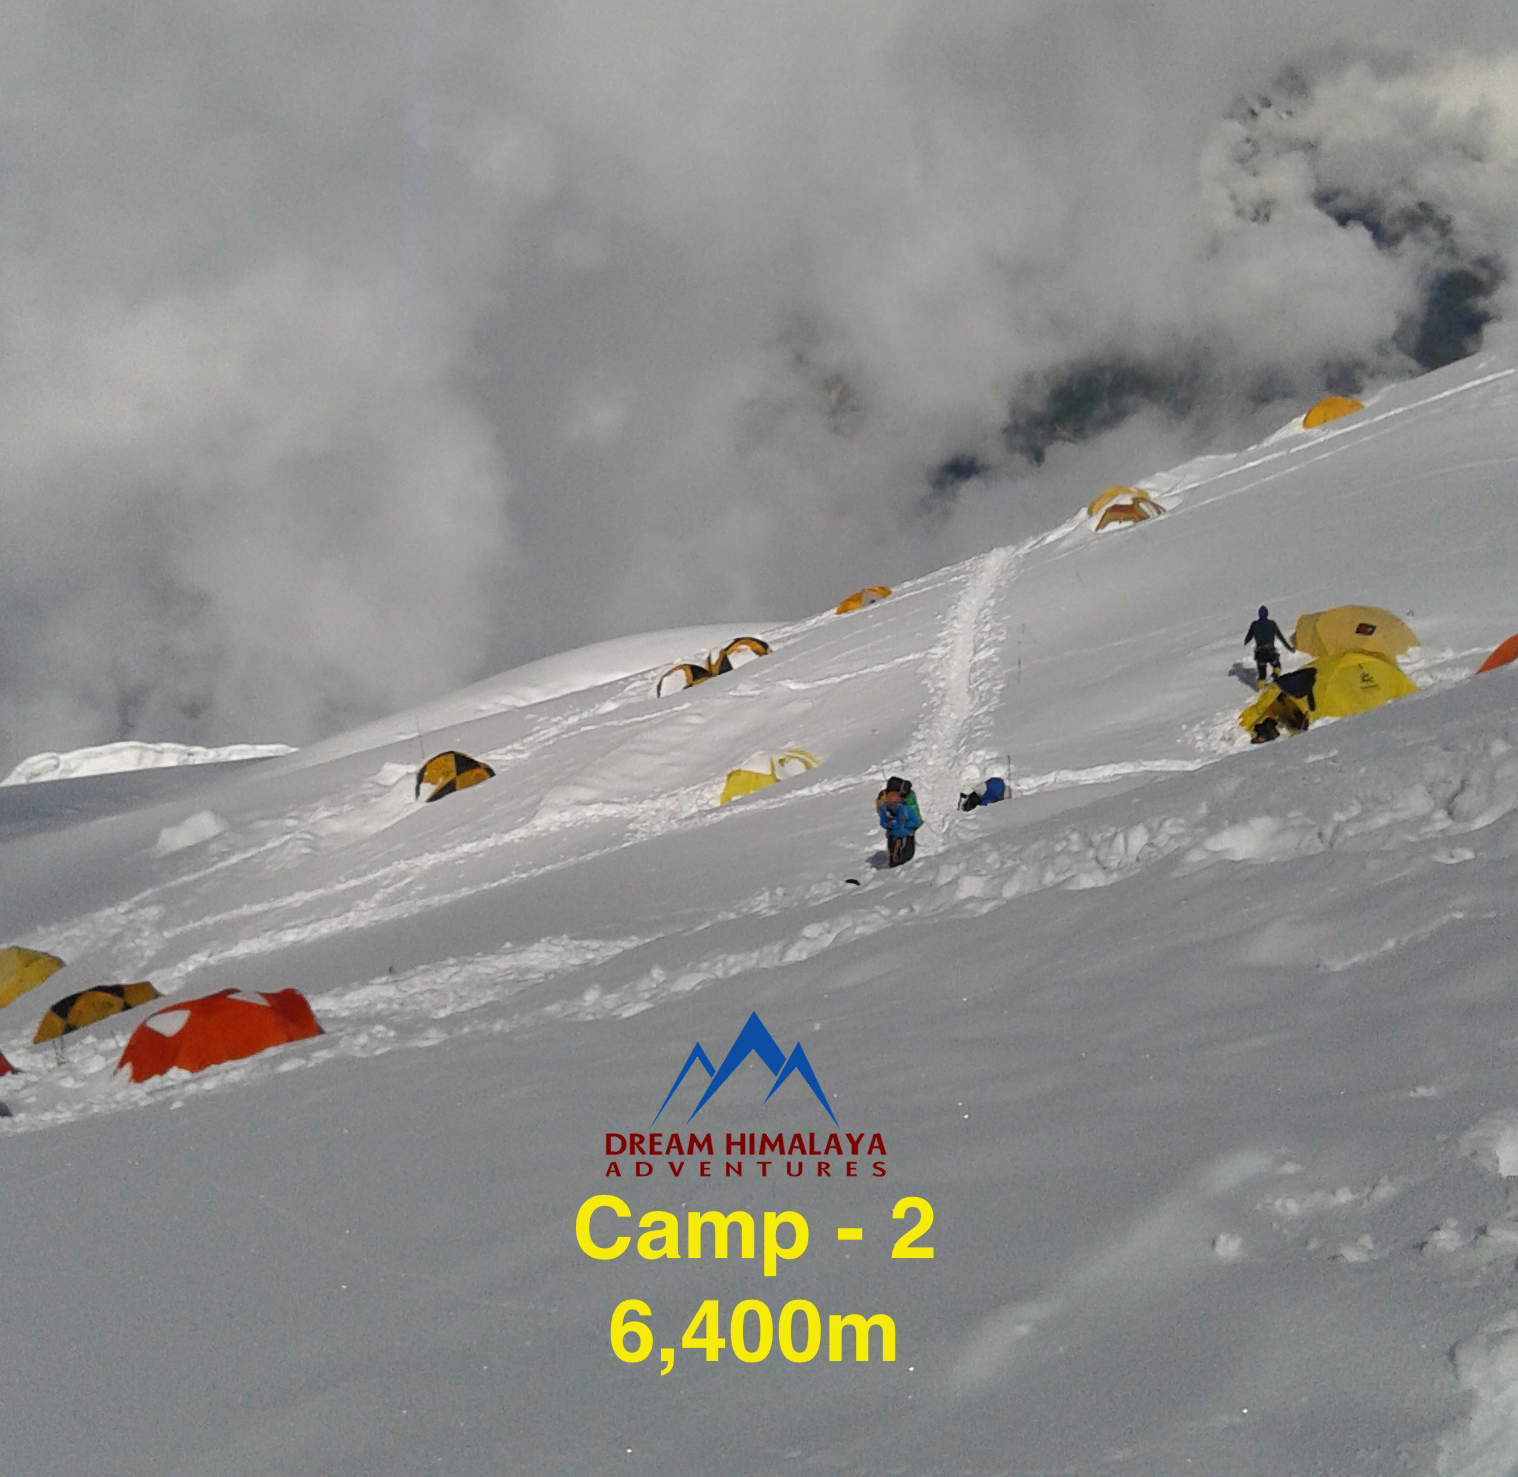 Camp-2, Mt Manaslu